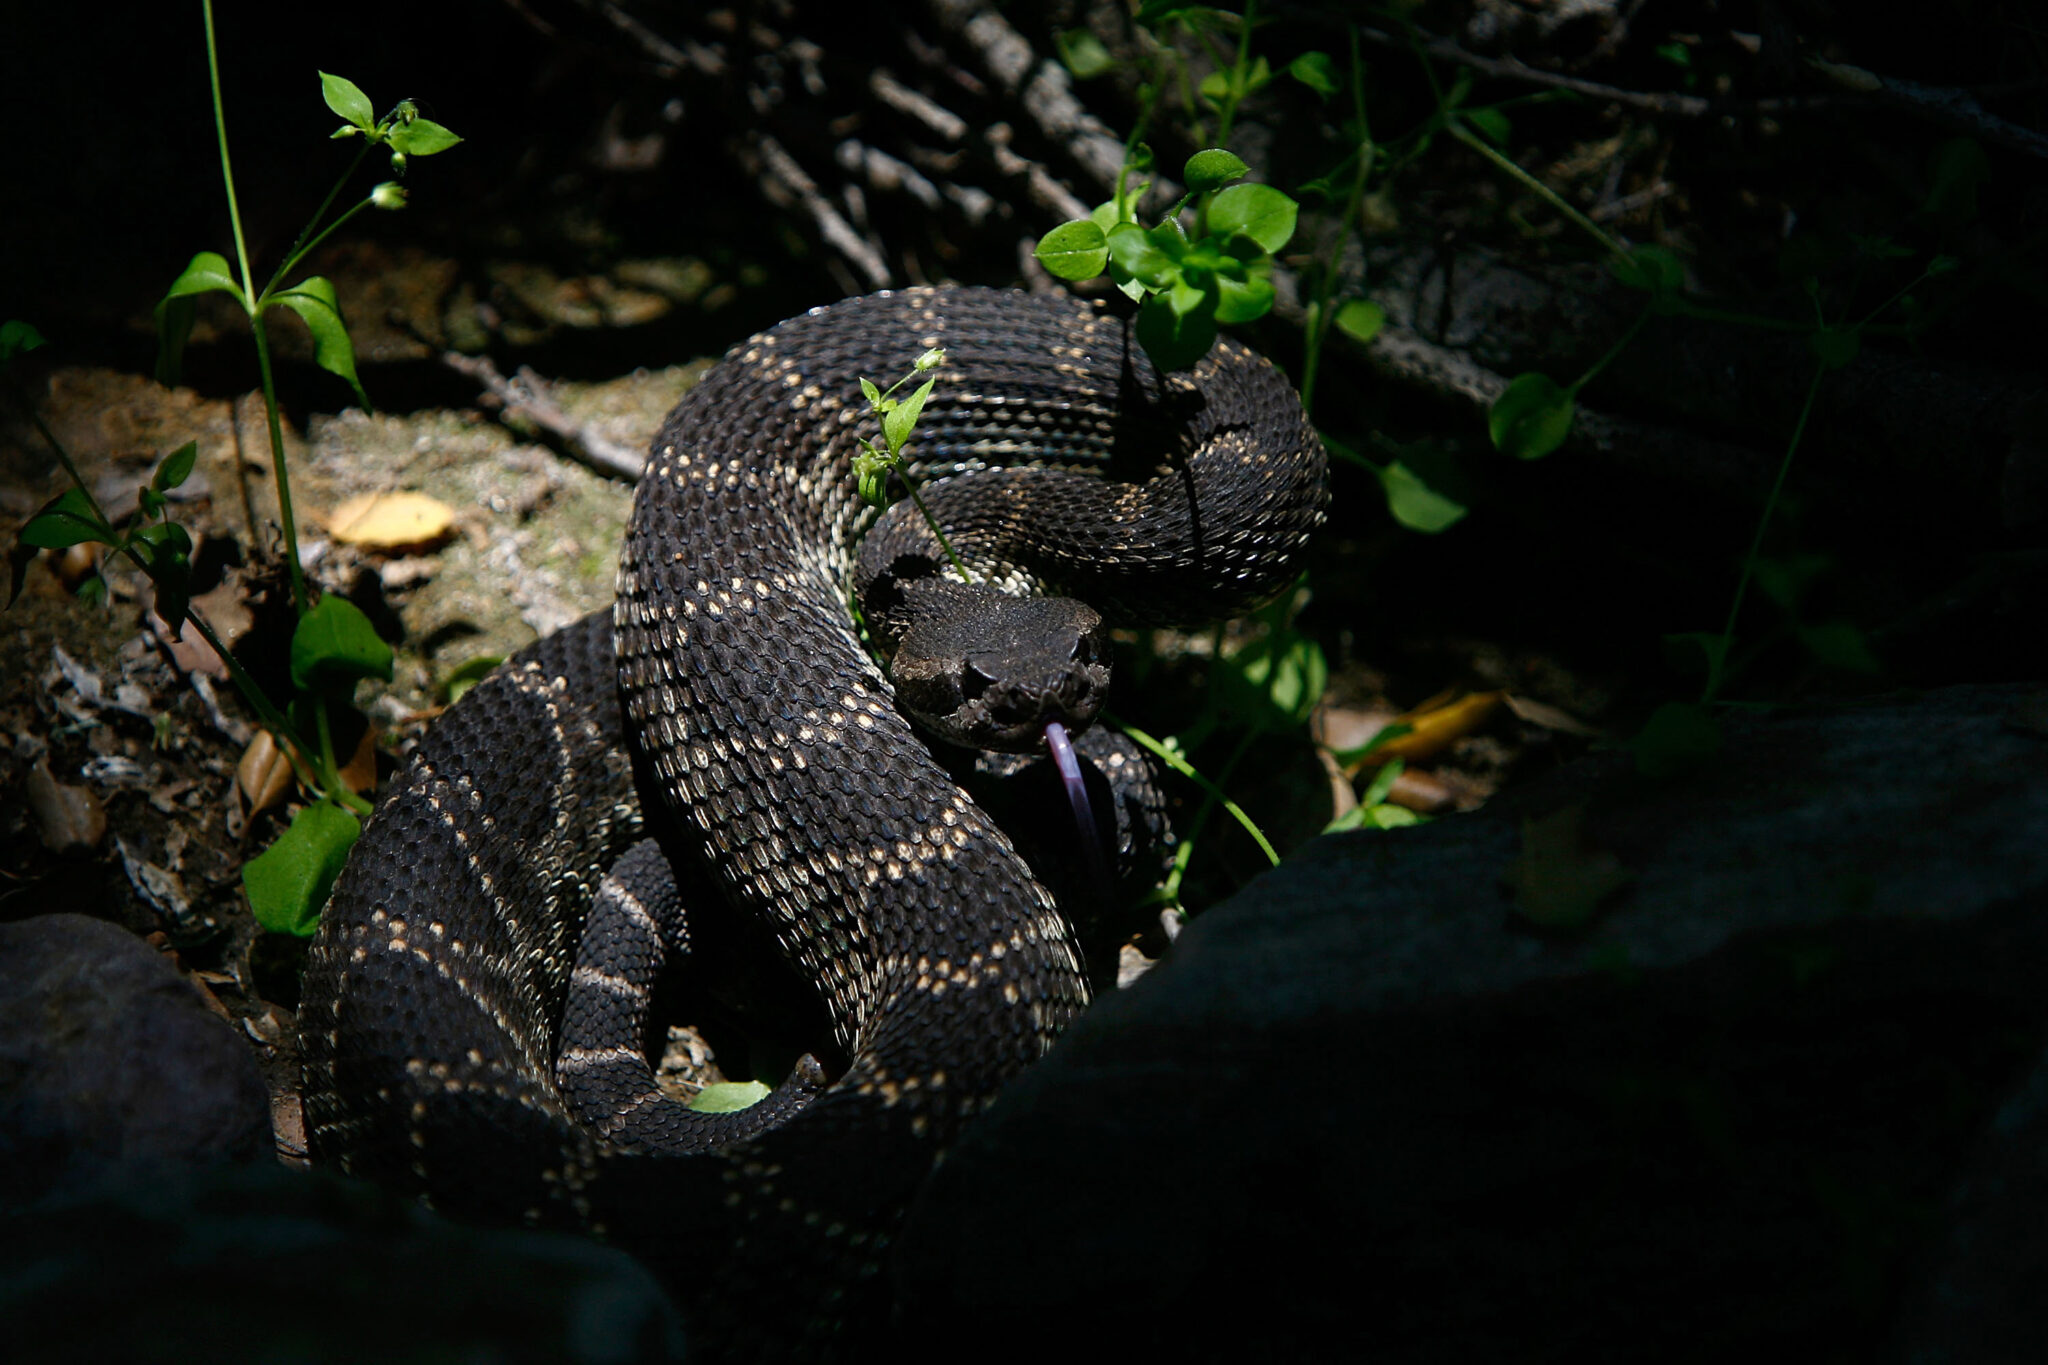 Warming Trends: Global Warming Means Happier Rattlesnakes